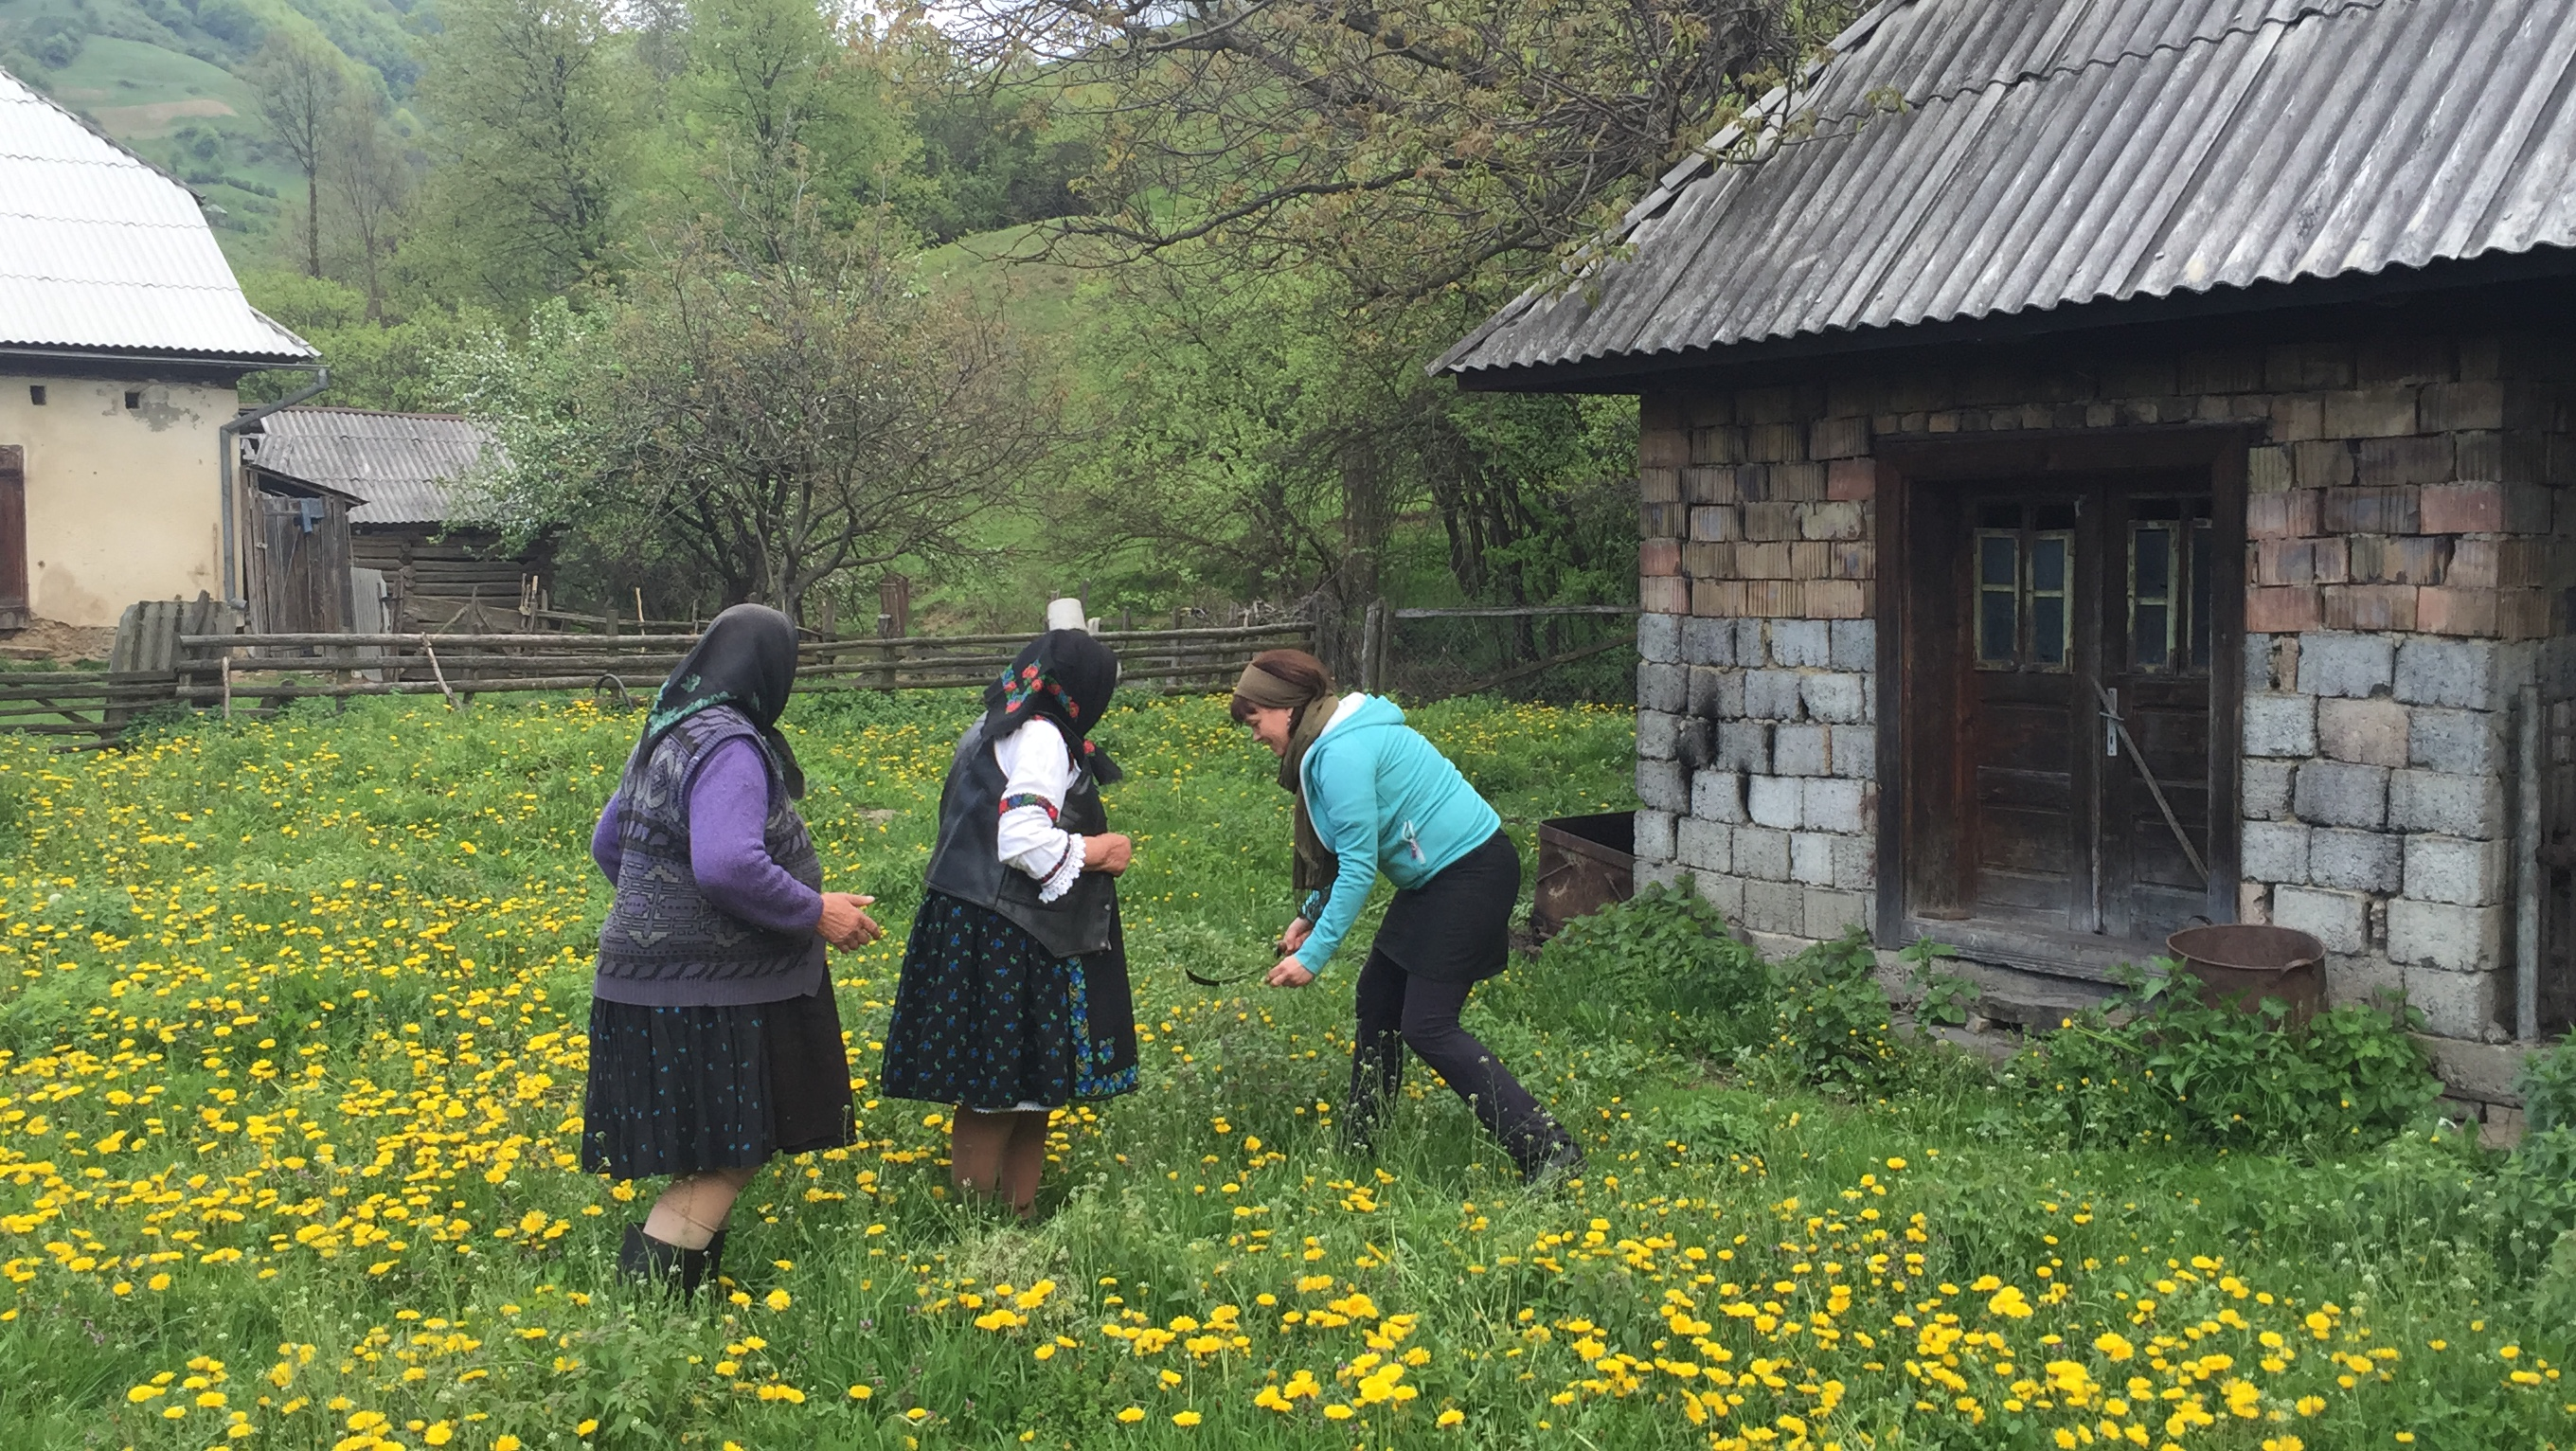 Ana Buda and her sister in Ungureni is teaching Malin how to harvest